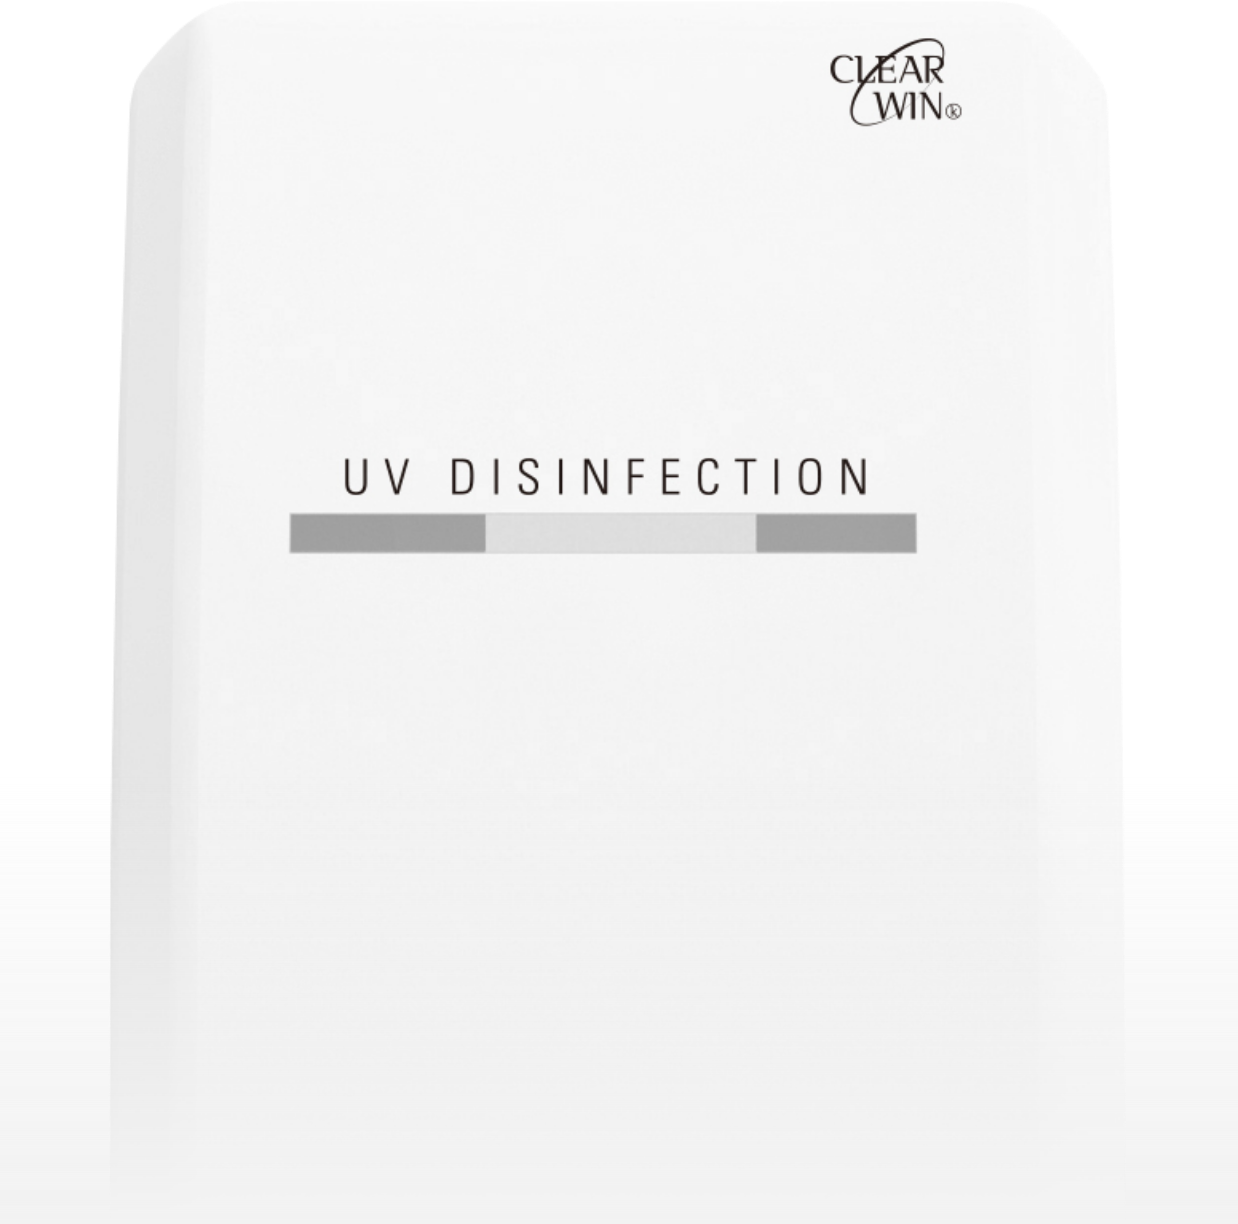 CLEARWIN UV DISINFECTION